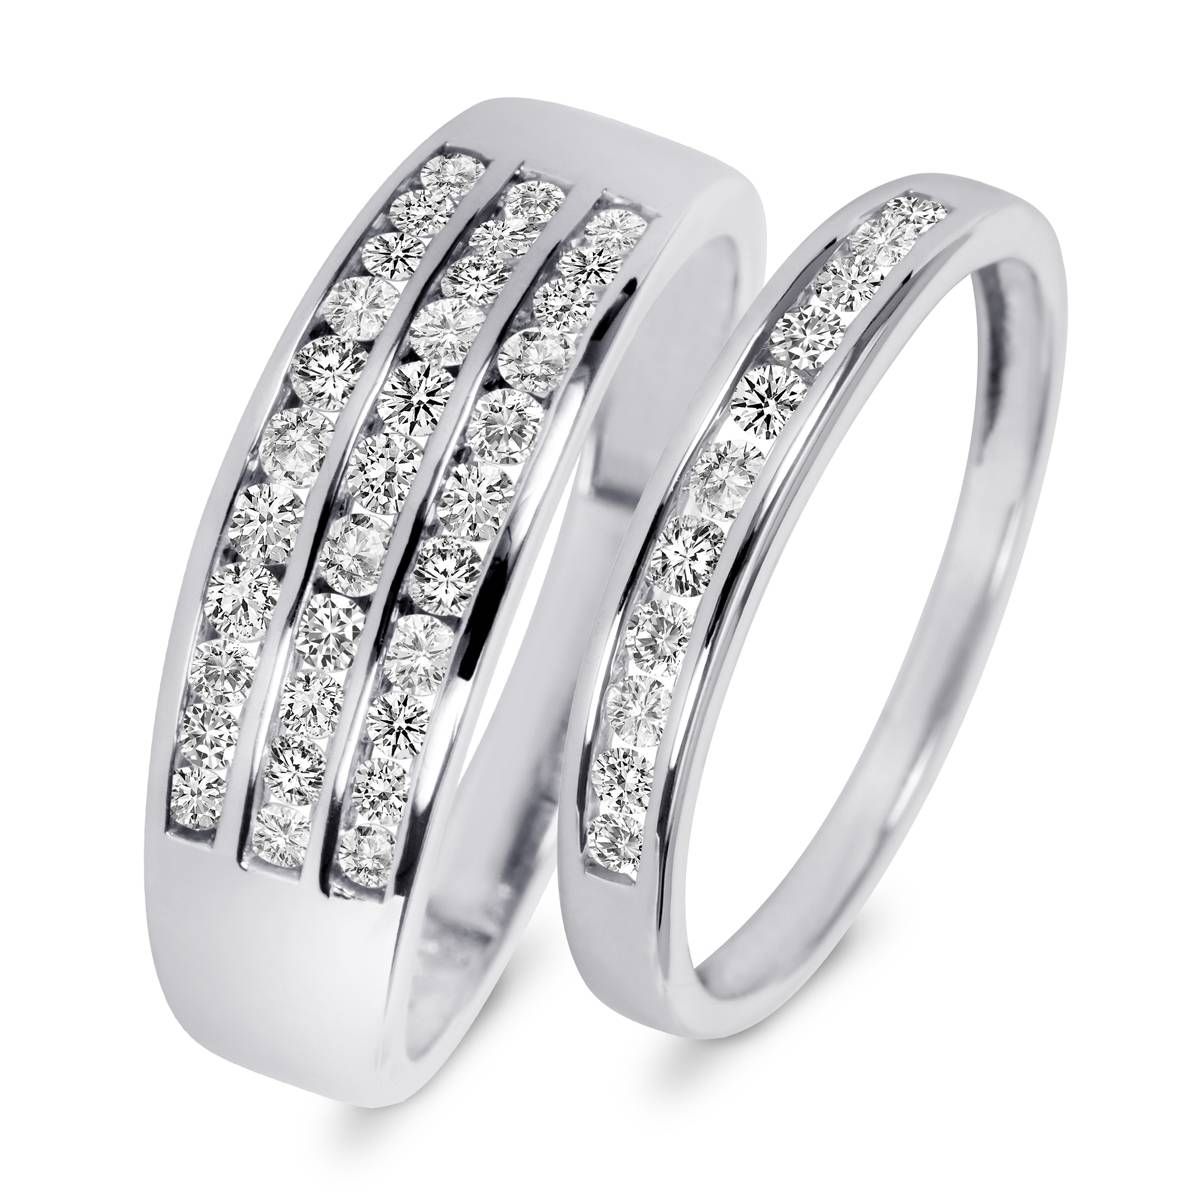 7/8 Carat T.w. Diamond His And Hers Wedding Rings 10K White Gold With White Gold Wedding Bands His And Hers (Gallery 1 of 15)